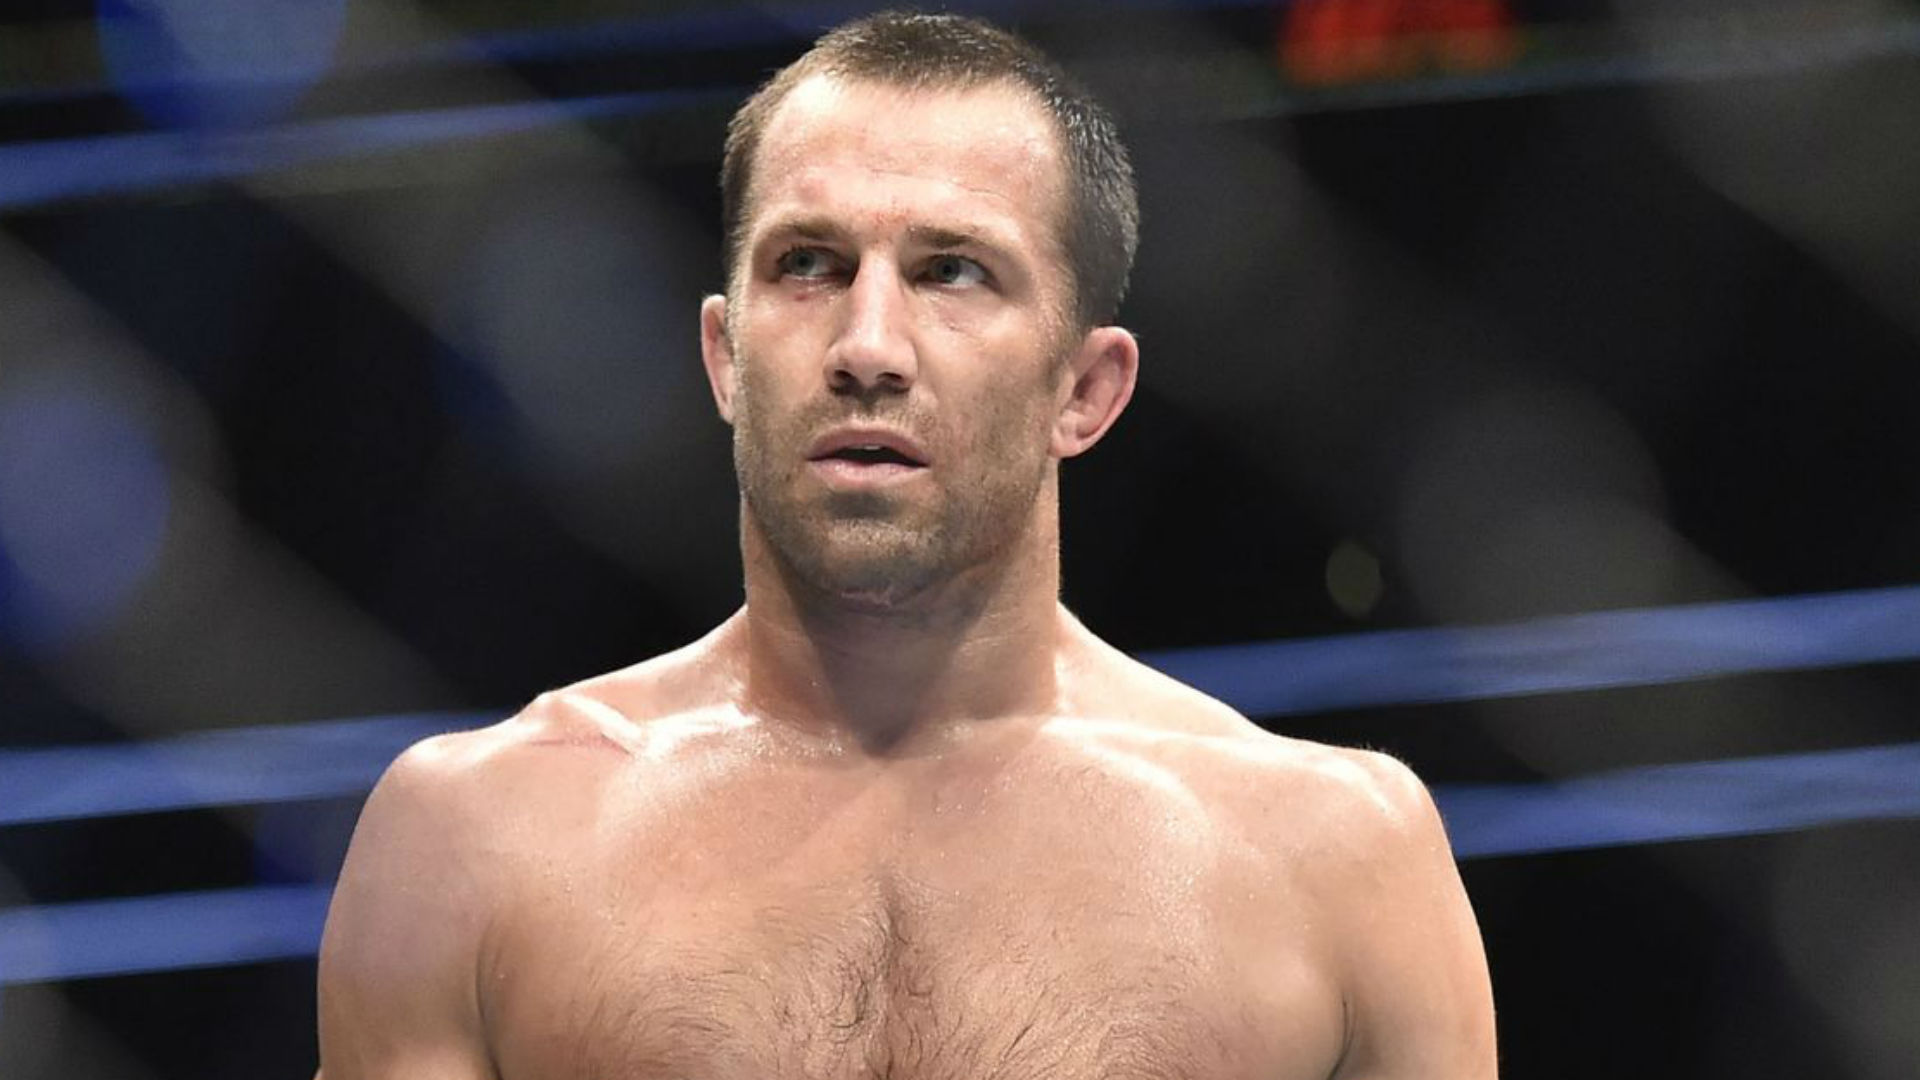 rockholds personals It's over for demi lovato and ufc stud luke rockhold  the two have called it quits, tmz sports has learned.